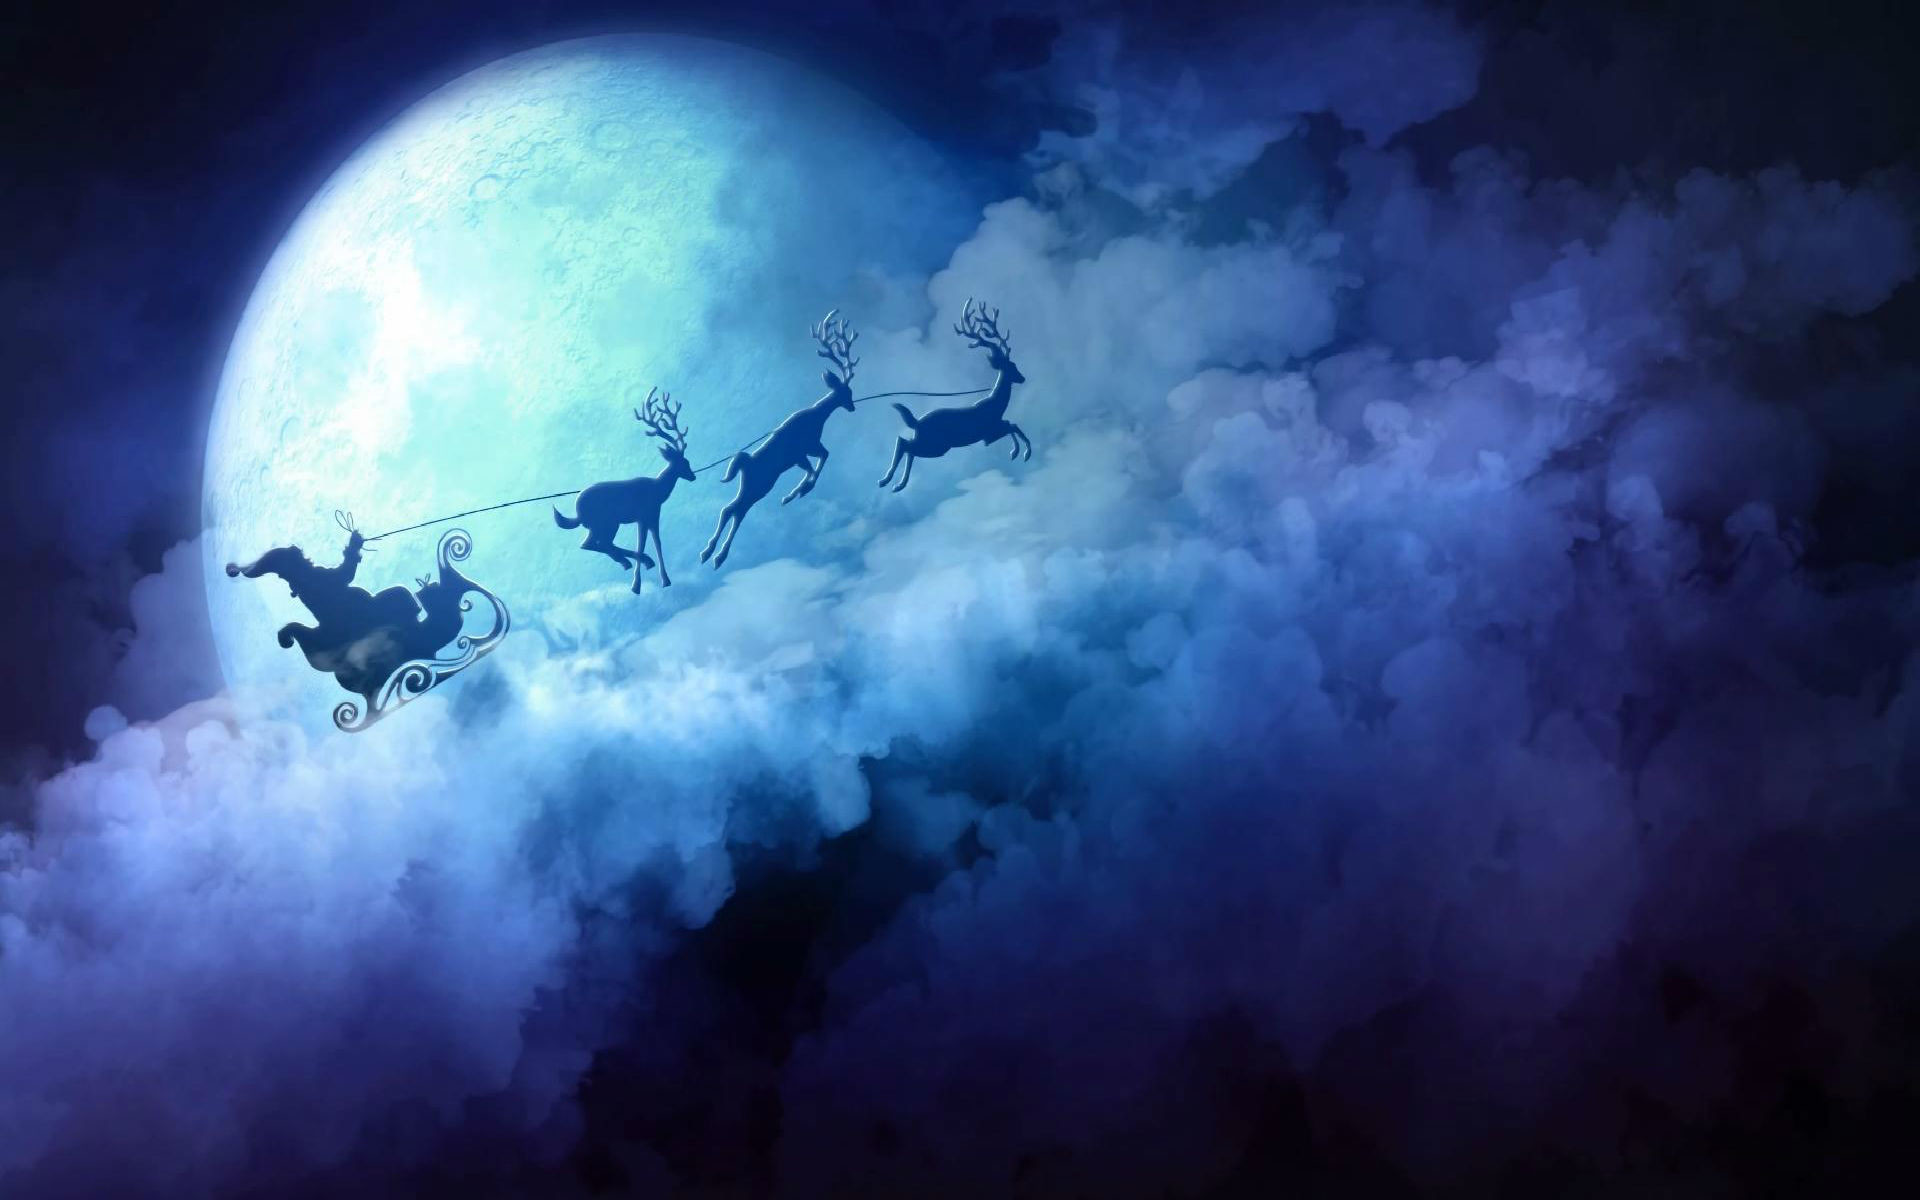 Res: 1920x1200, Santa Claus Reindeer Sleigh over the Moon and Clouds Desktop Wallpaper